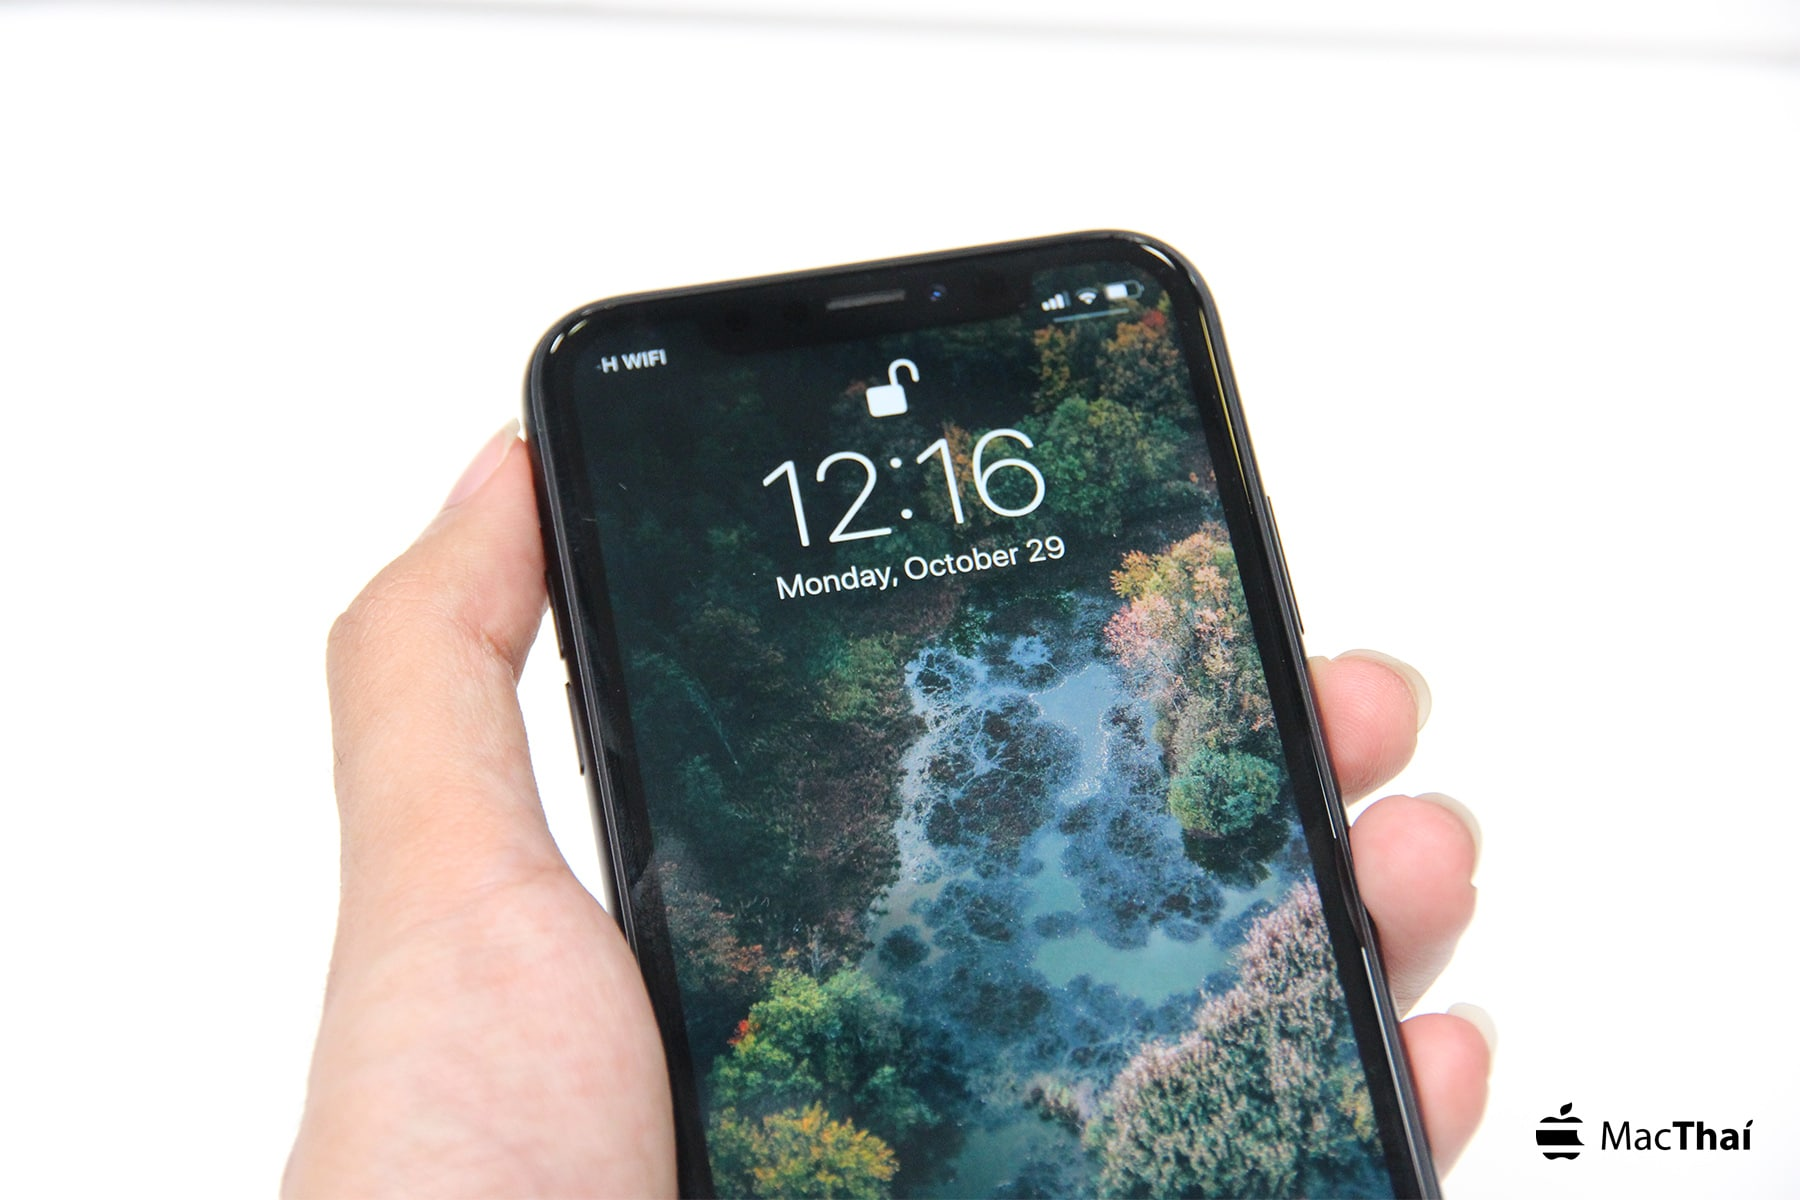 macthai-iphone-xr-review-13